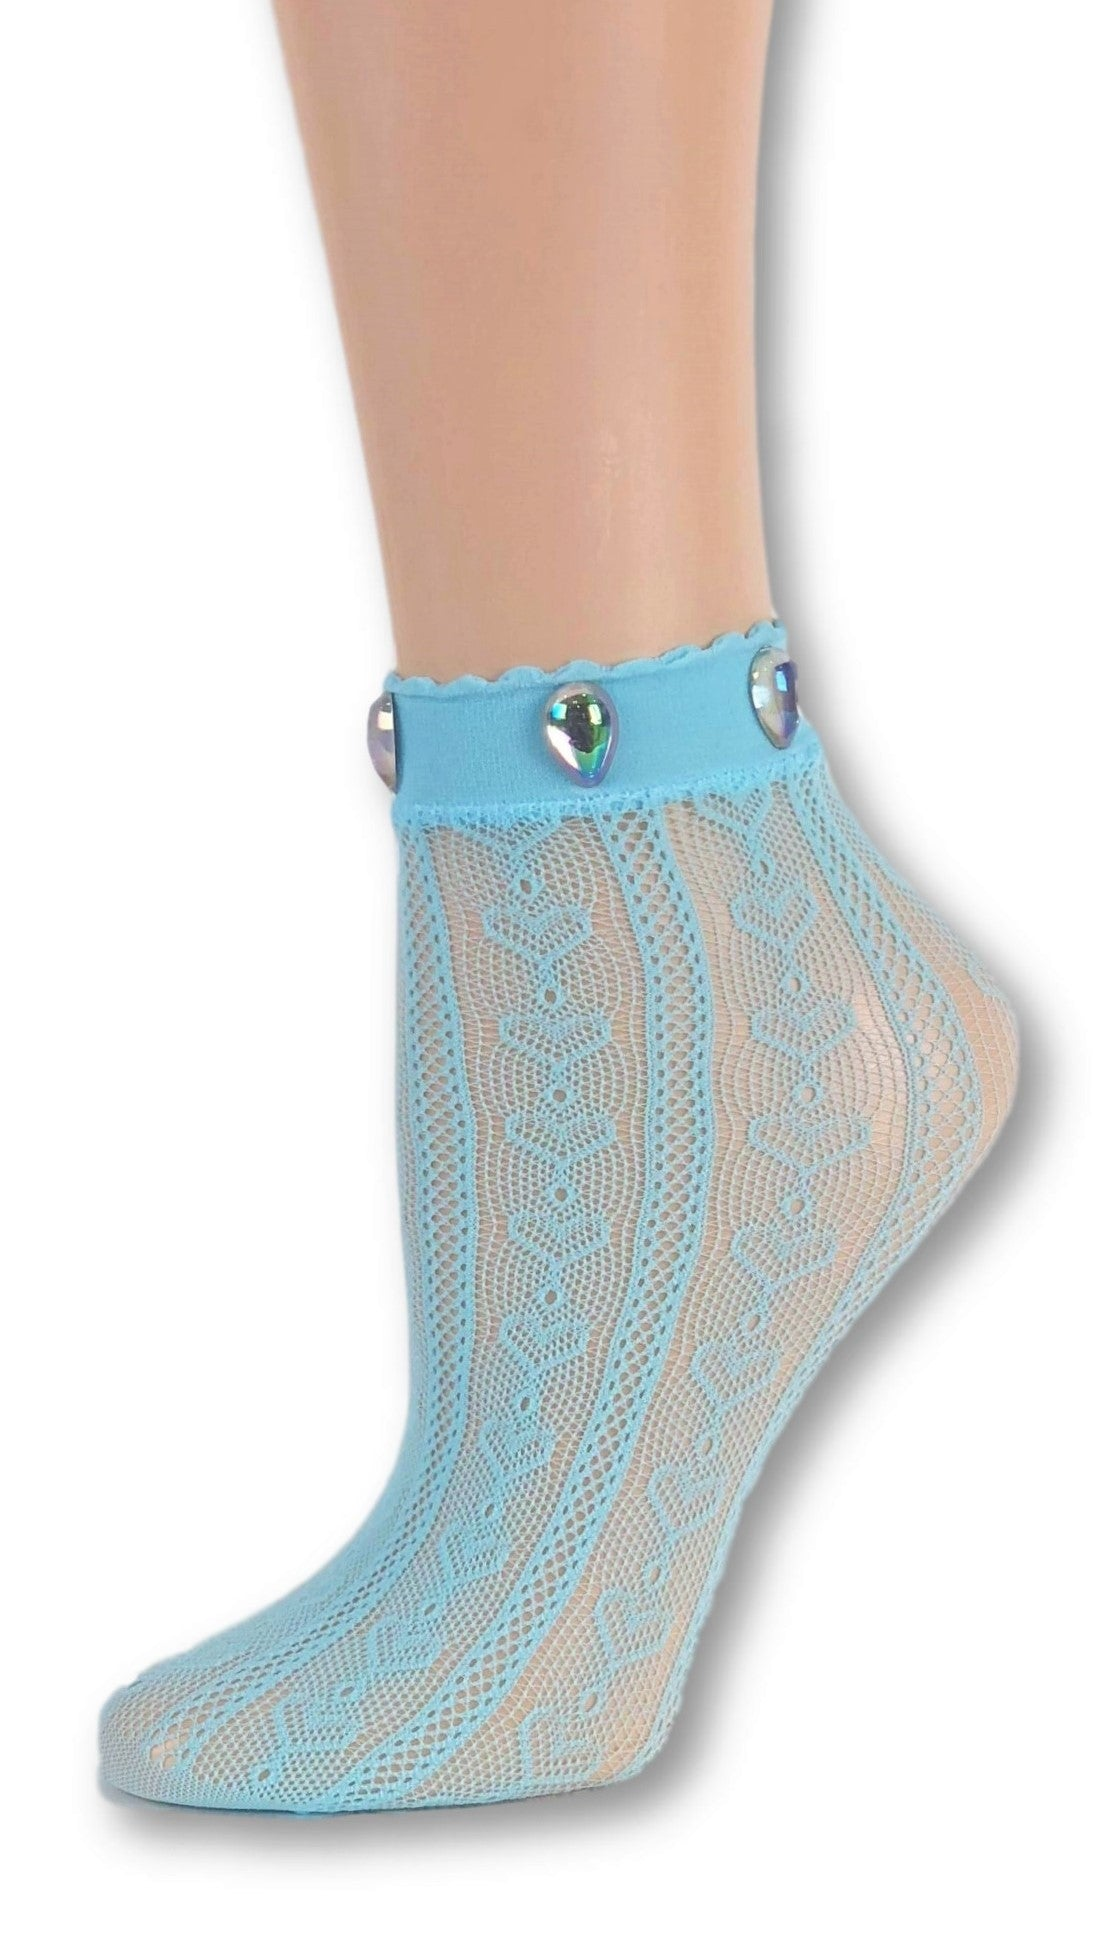 Heart Cool Blue Custom Mesh Socks with beads - Global Trendz Fashion®